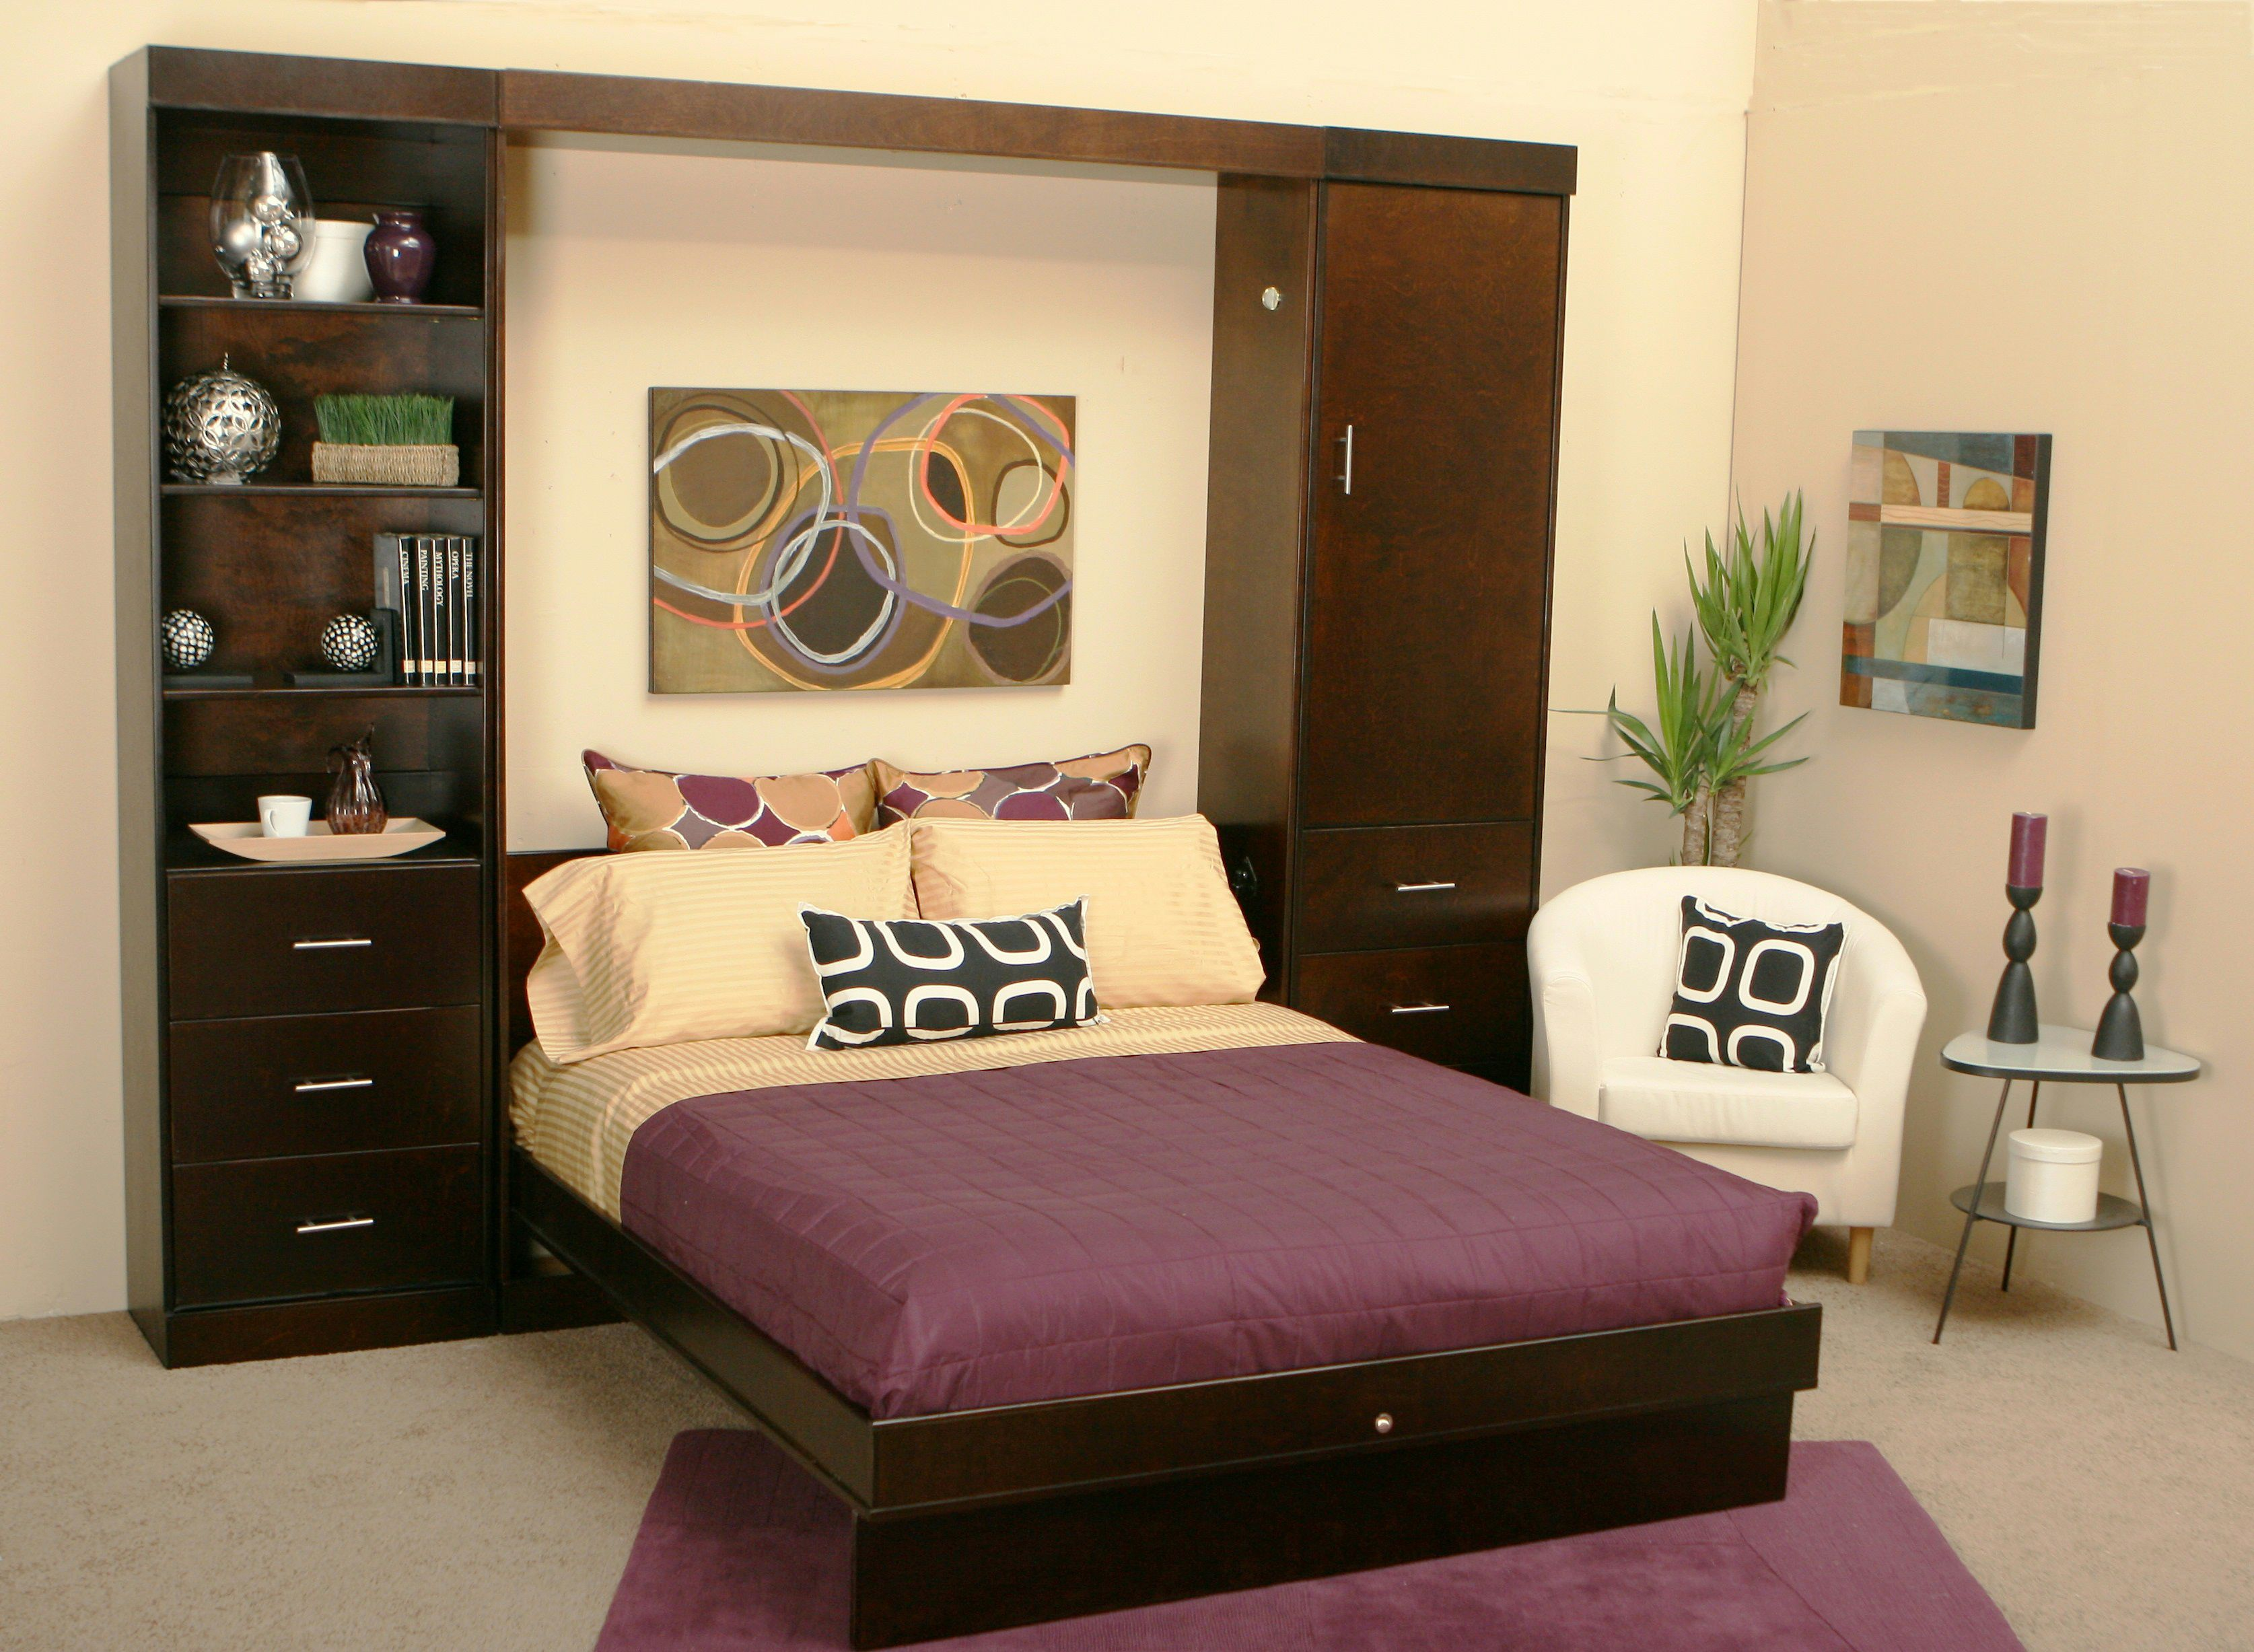 How to arrange living spaces furniture in small living - Small space bedroom furniture ...